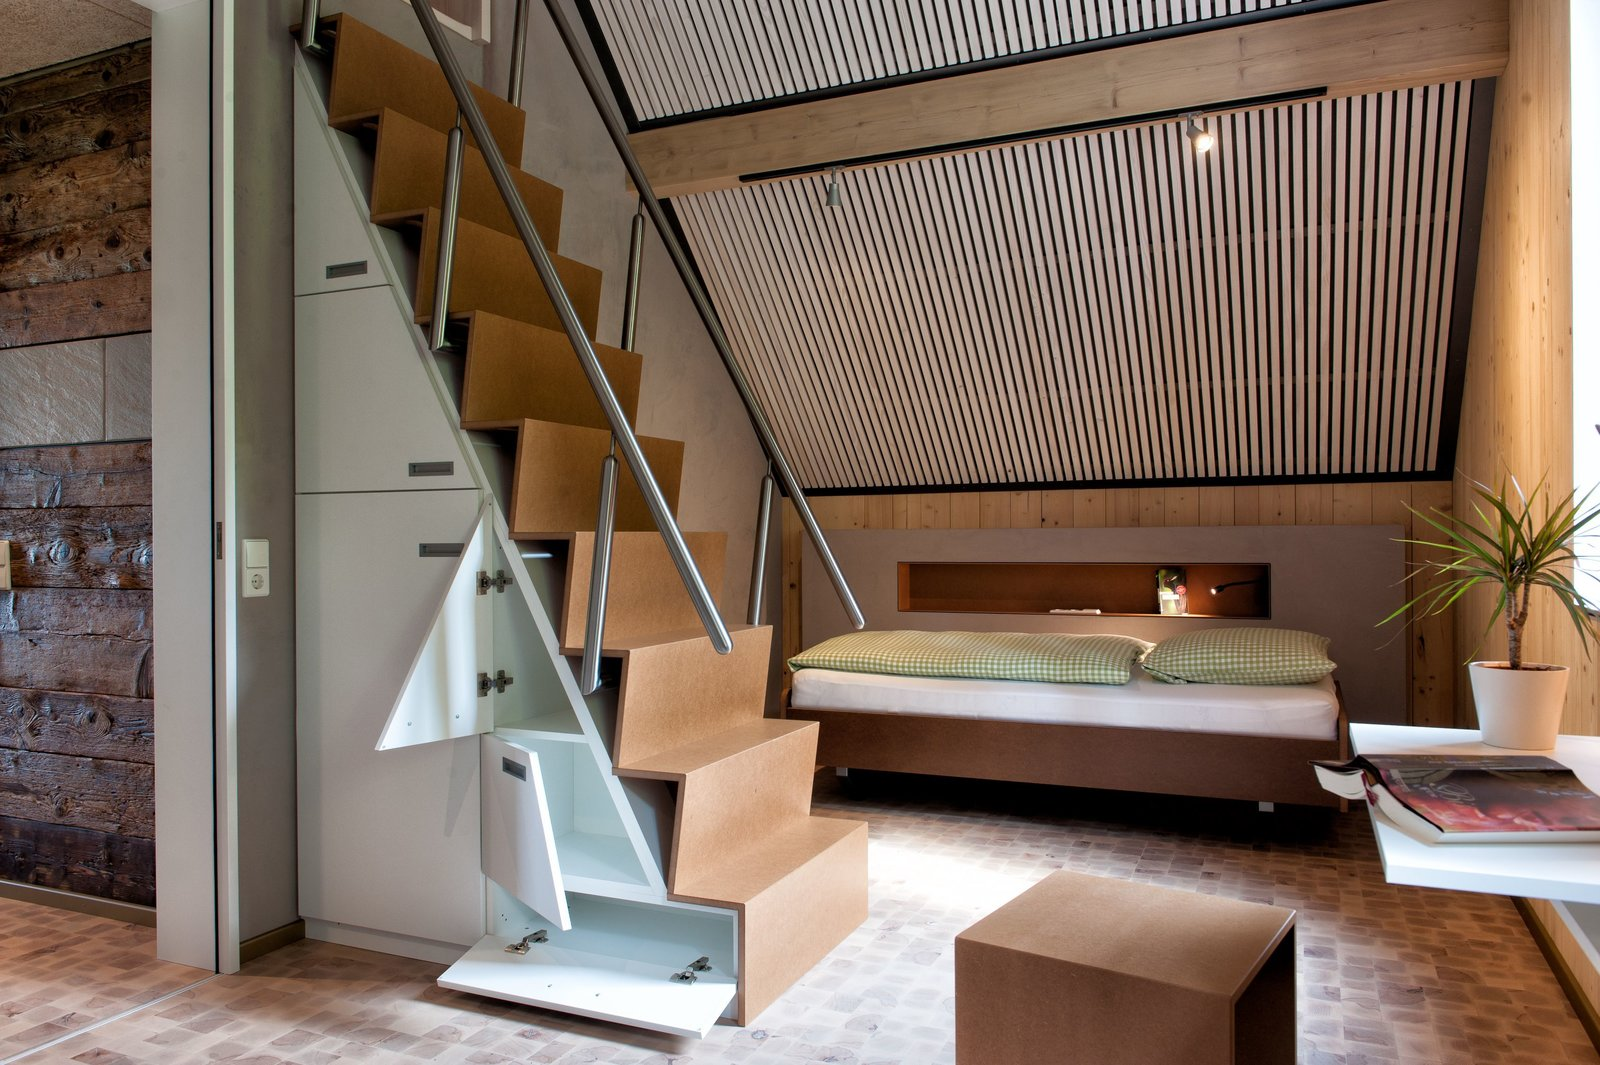 Staircase, Wood Tread, and Metal Railing  Photo 5 of 9 in These 4 European Homes Show How Striking a Steep Roof Can Be